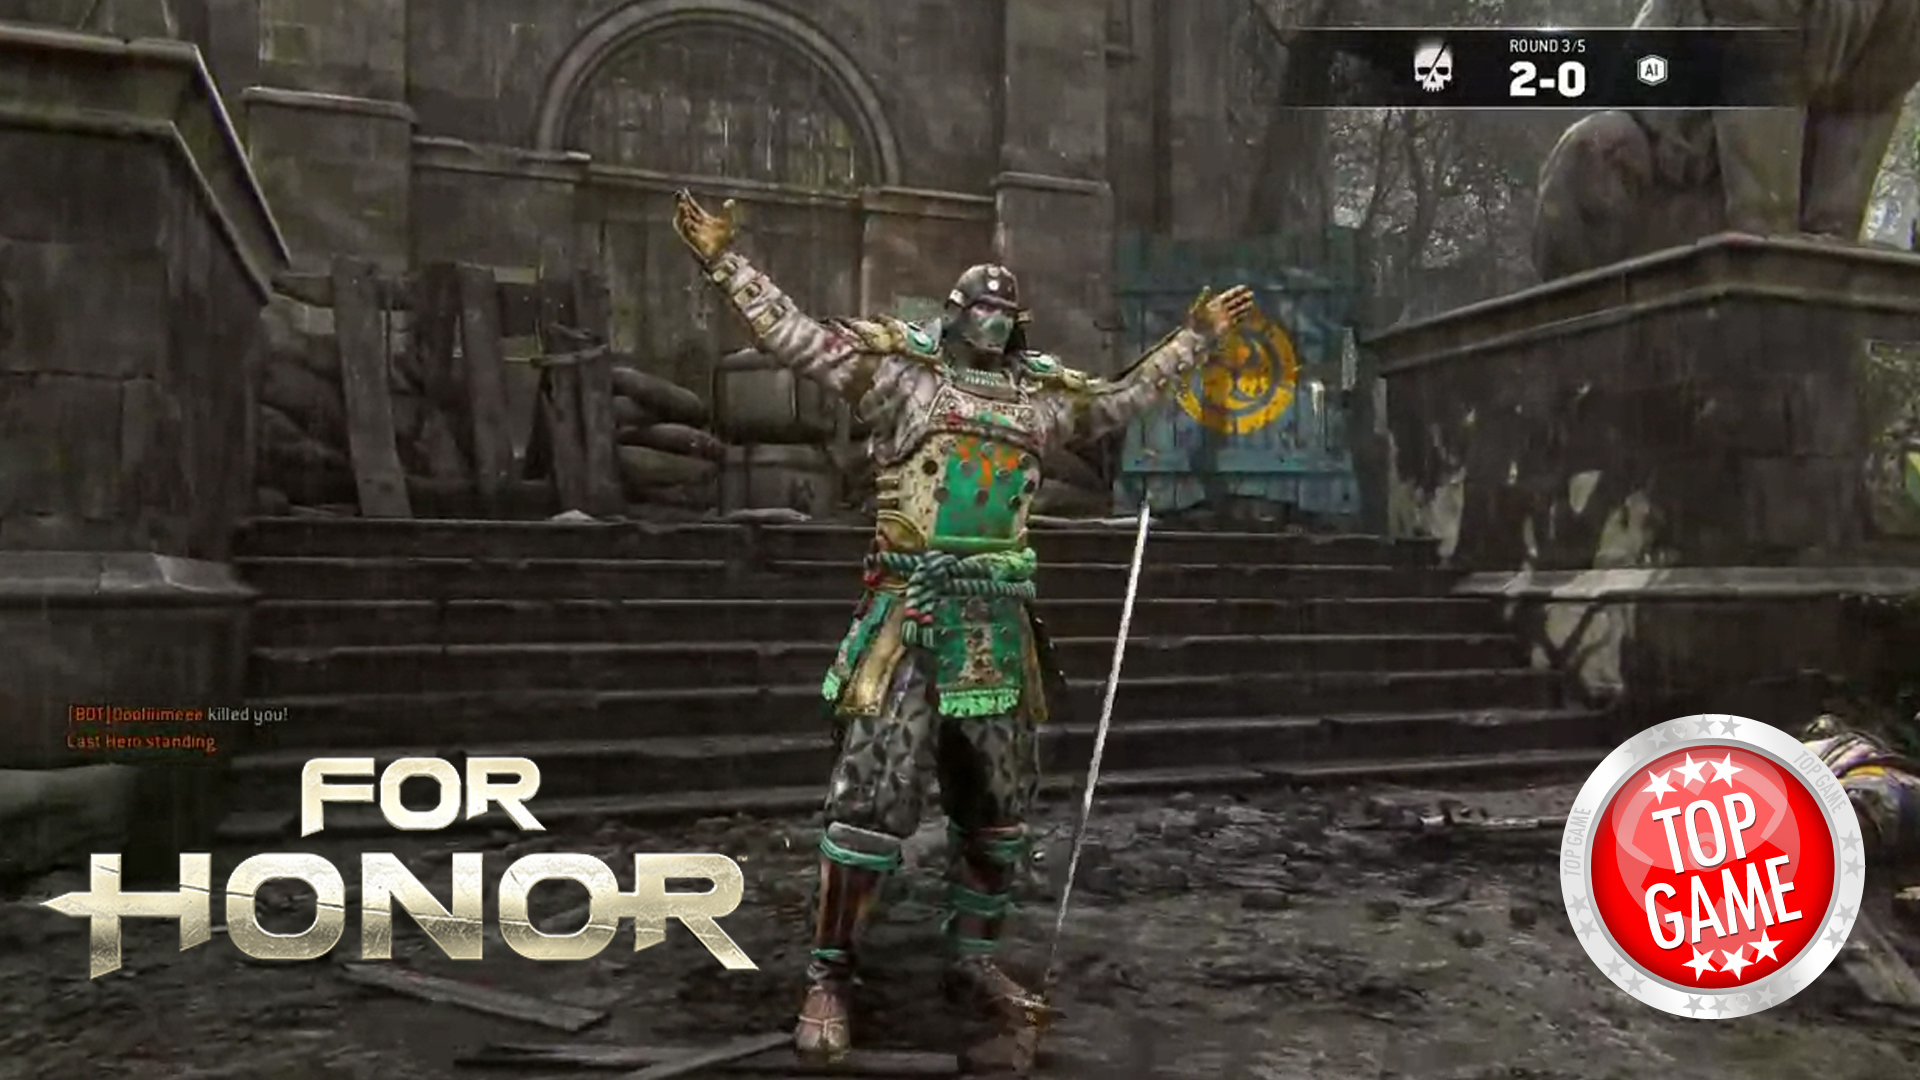 For Honor Taunts Cover